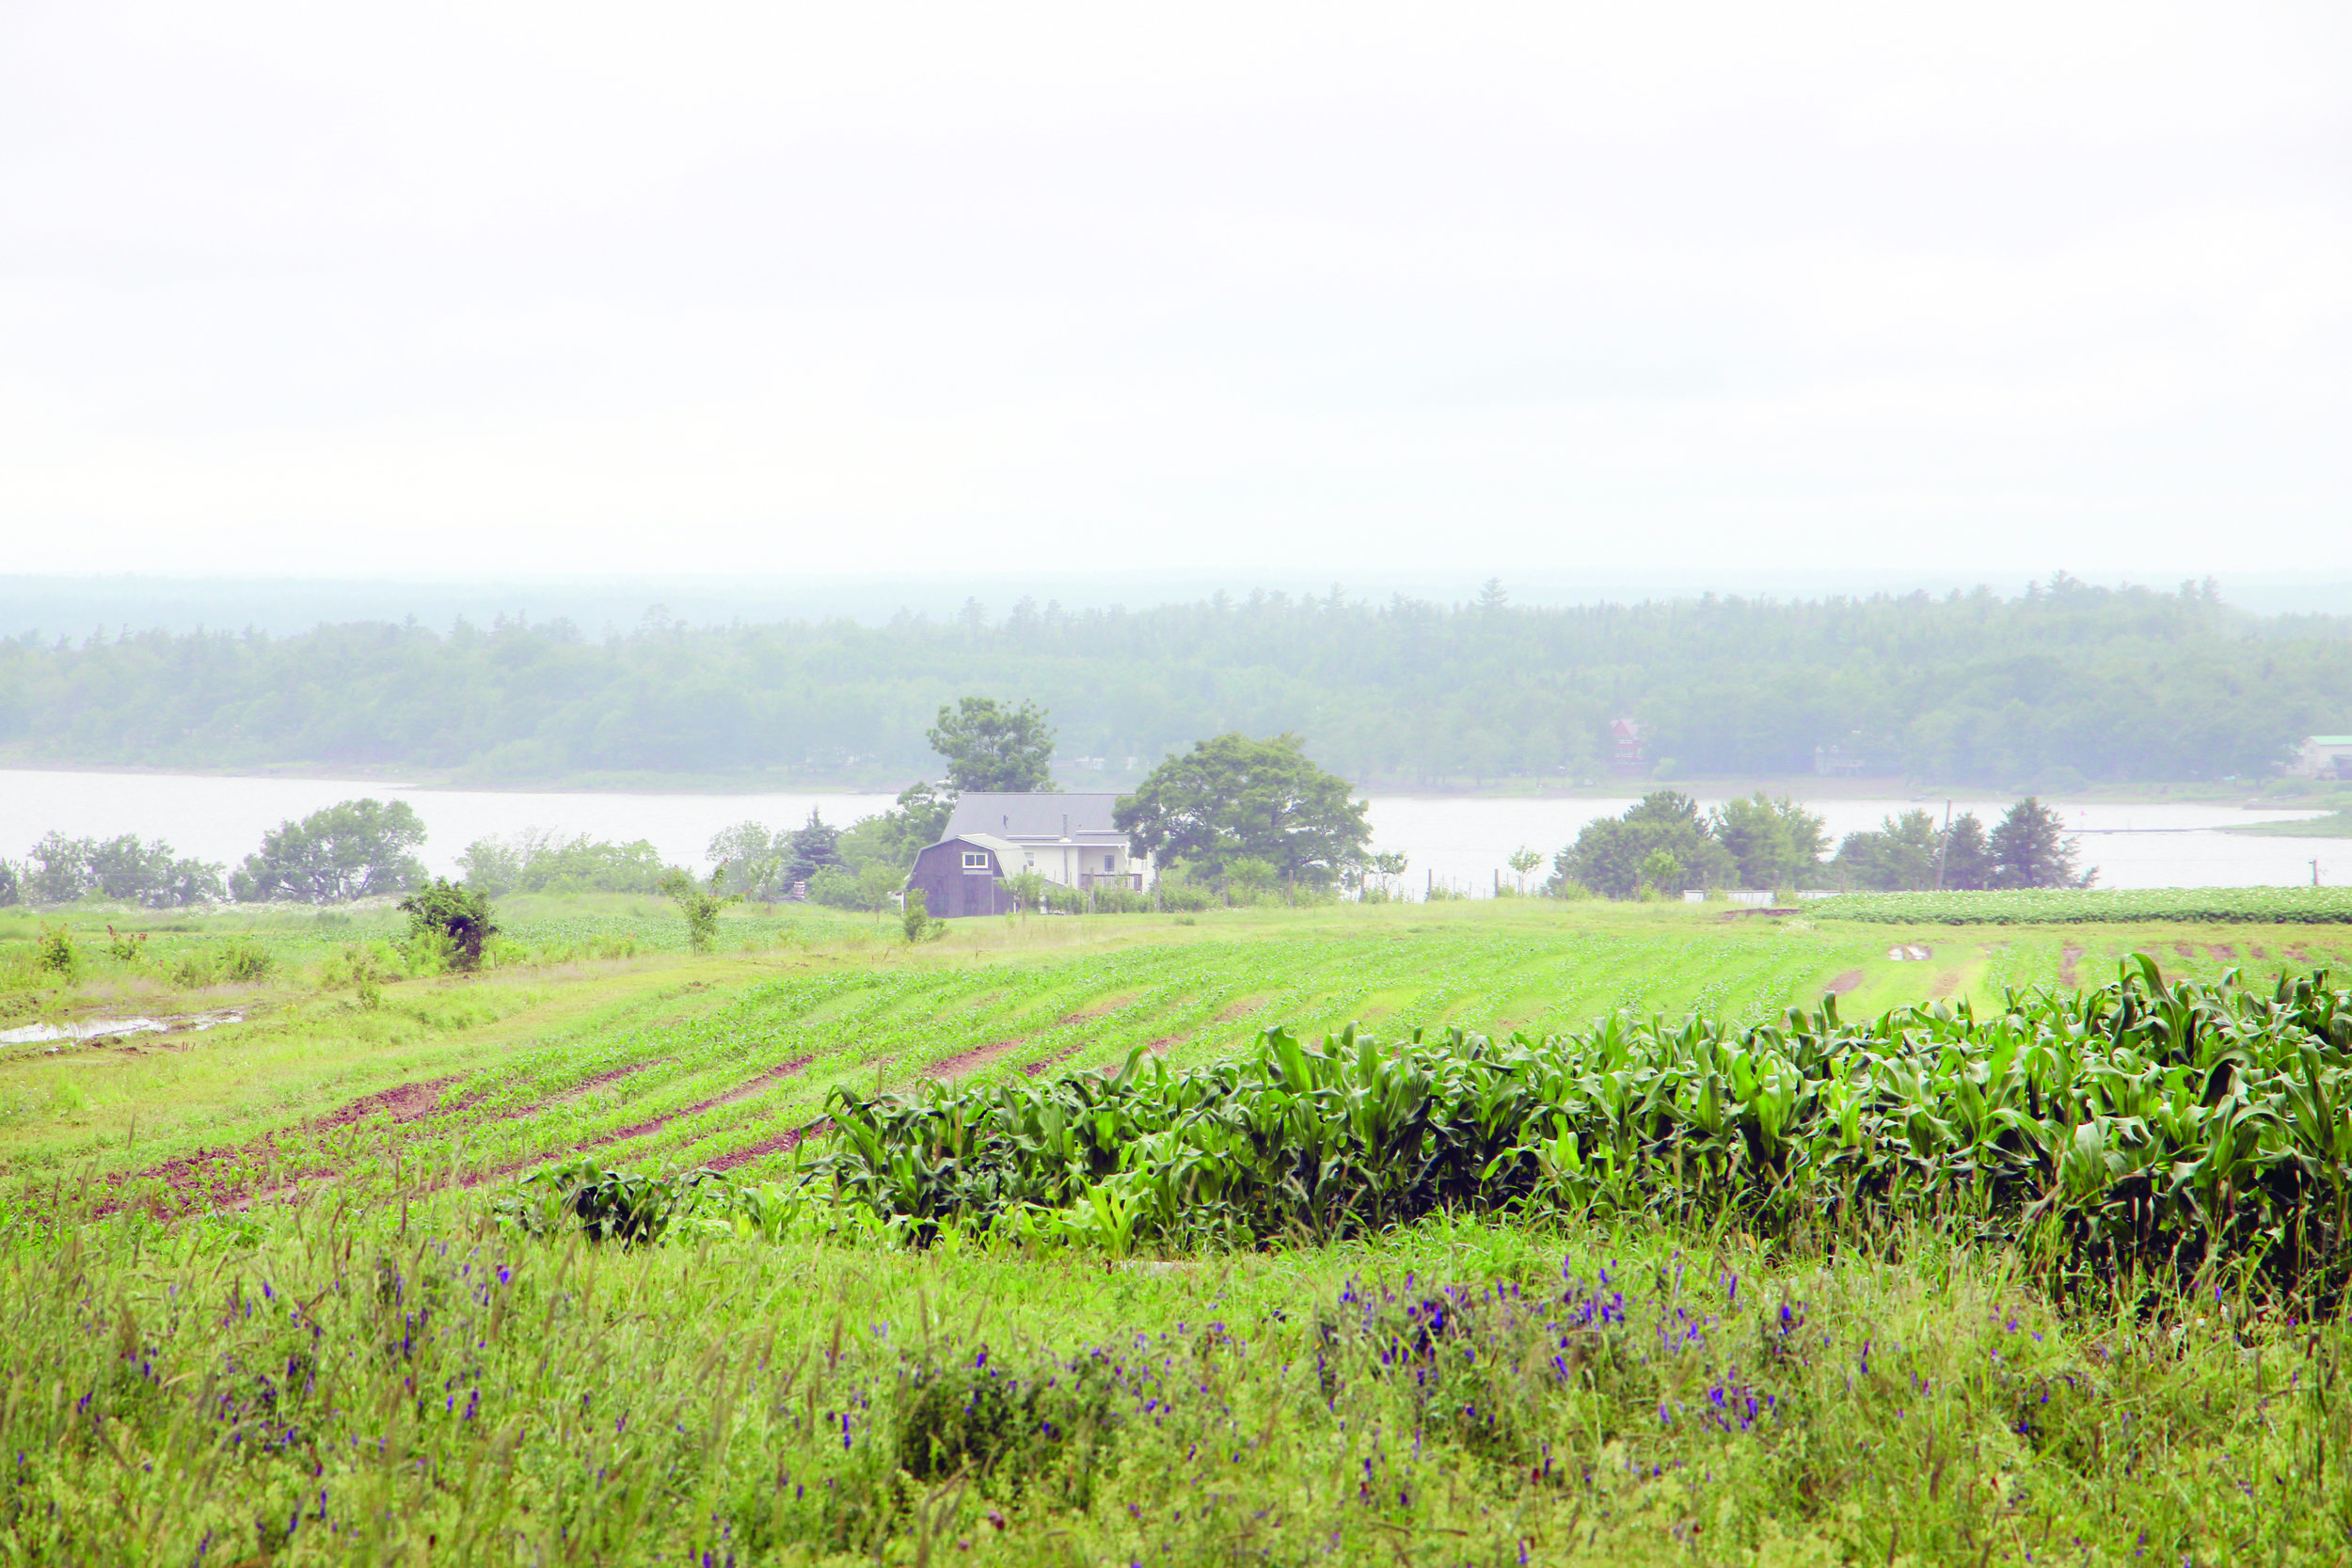 A view of some of the Slocum family's crops in Waterborough, N.B., looking toward Grand Lake. (George Fullerton photos)